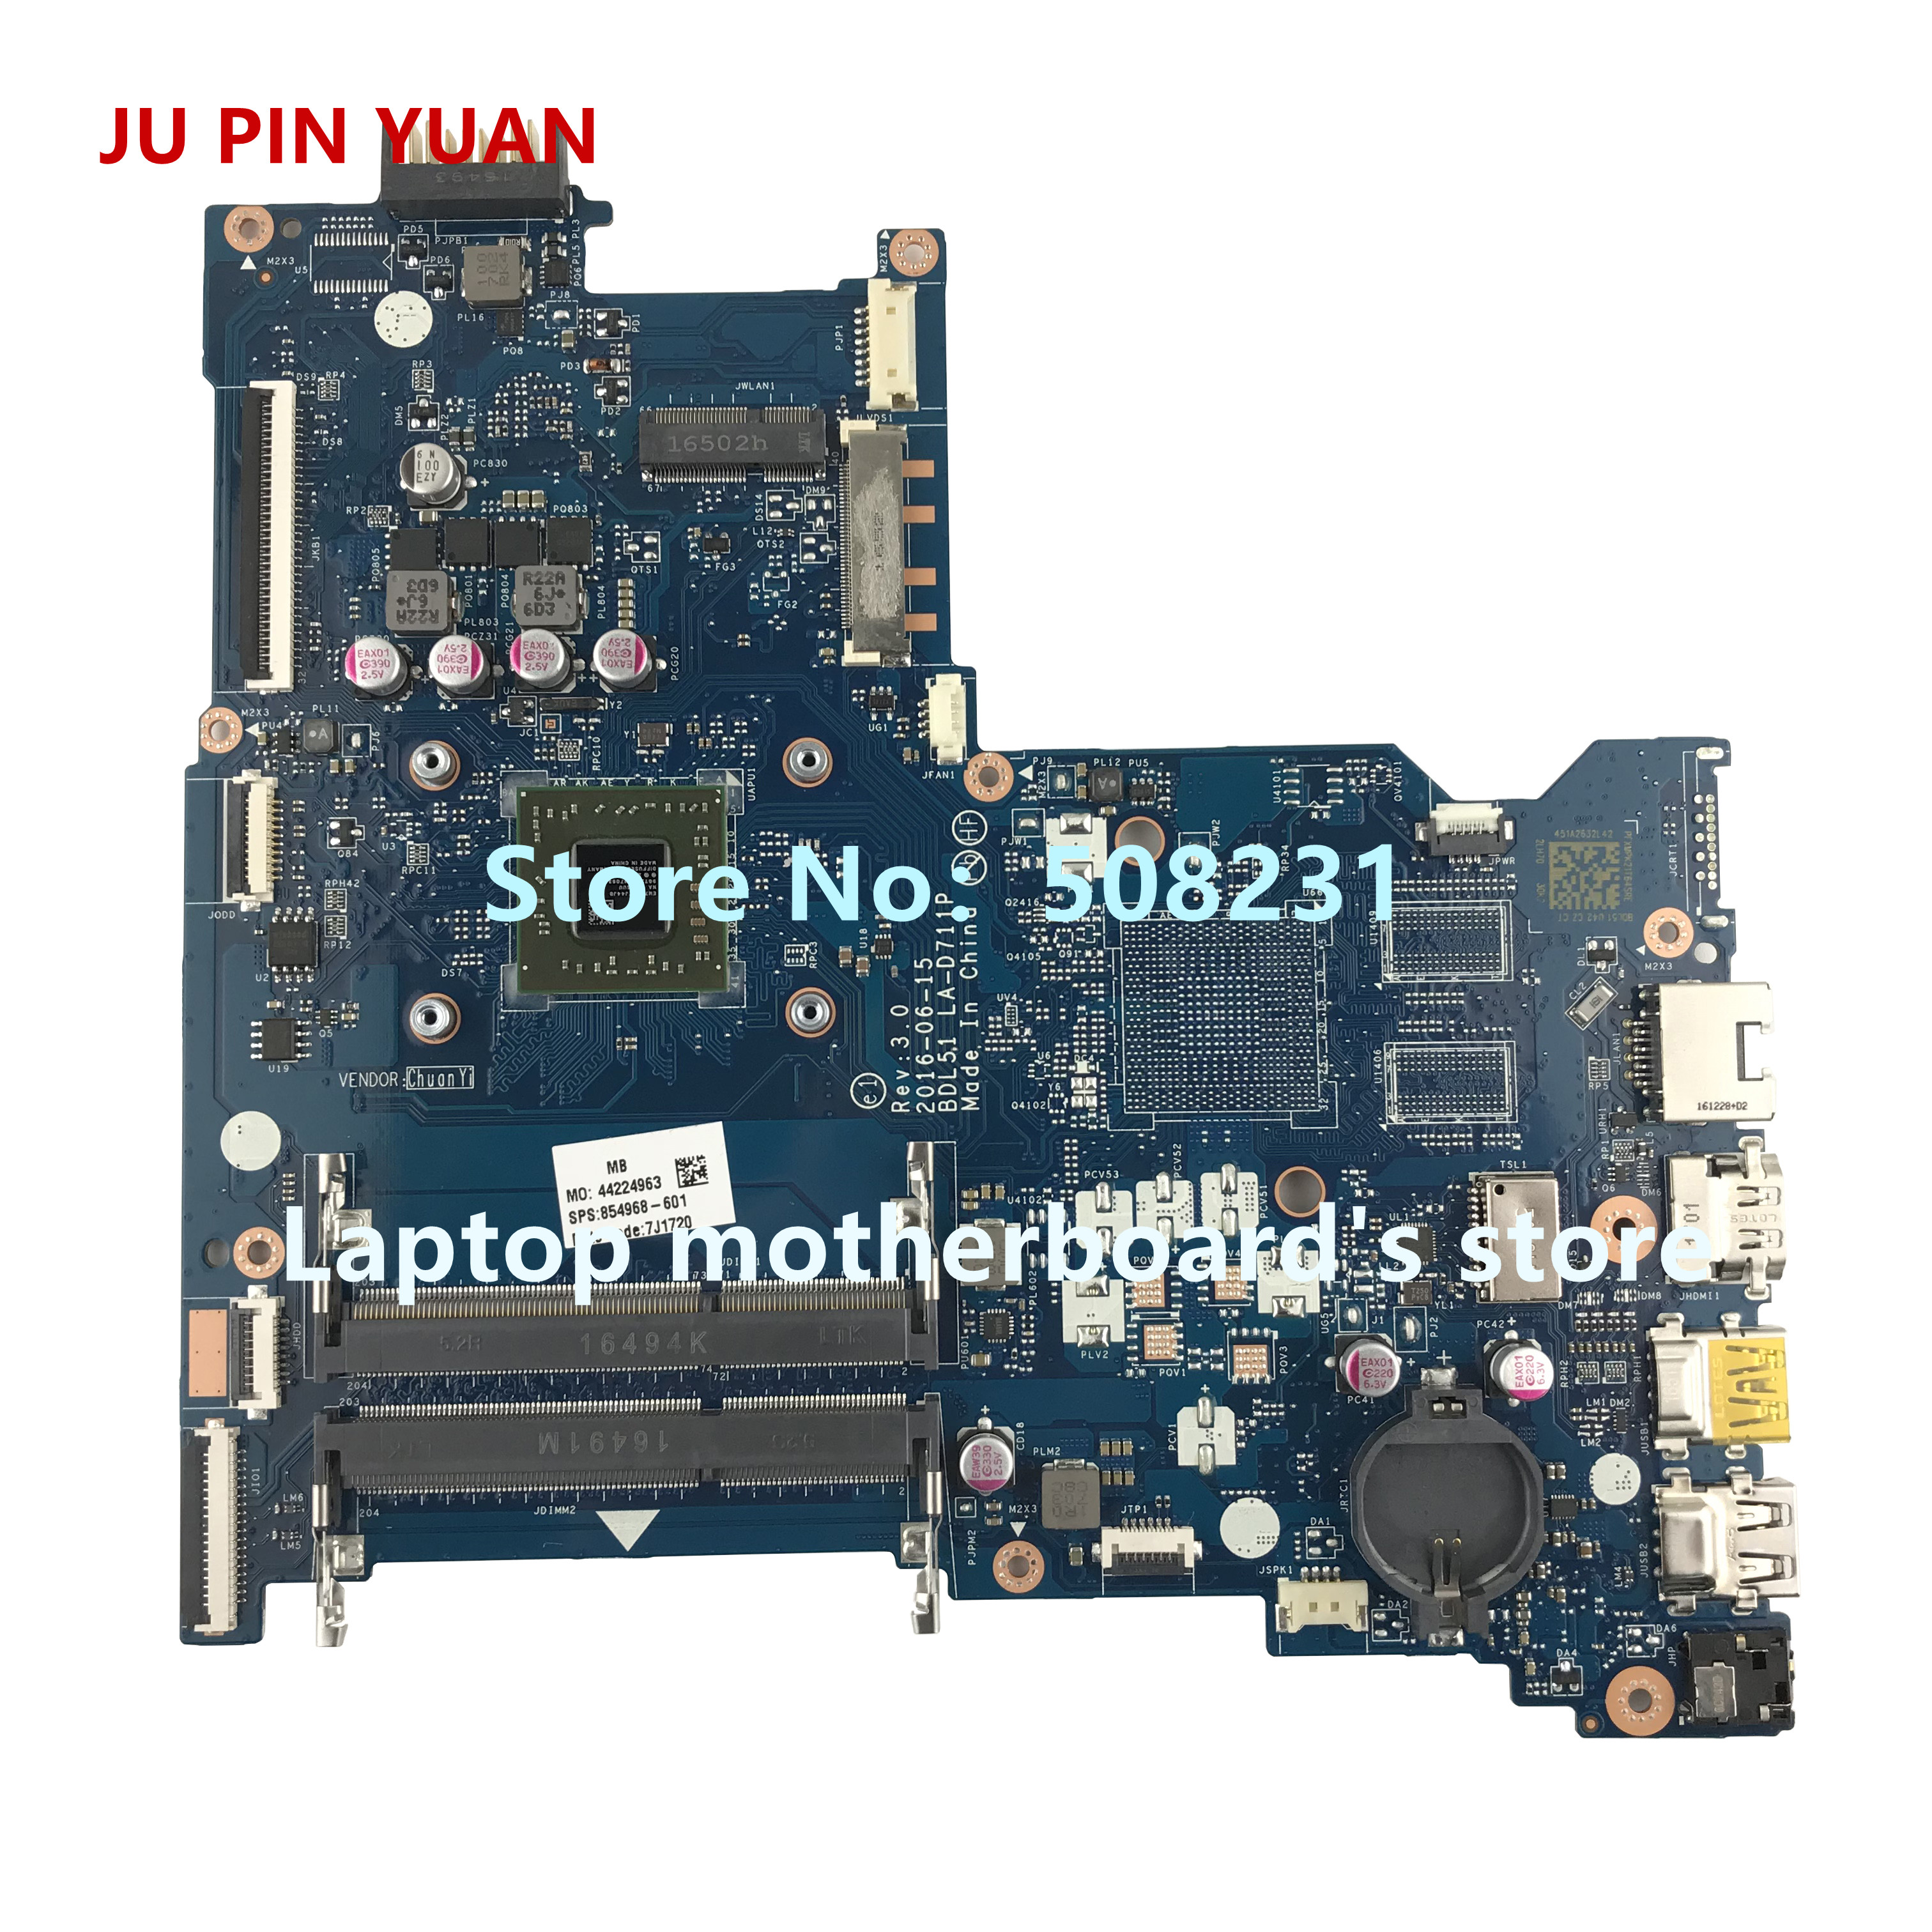 JU PIN YUAN 854968 001 mainboard 854968 601 for HP NOTEBOOK 15 BA 15Z BA 15 ba060nf laptop motherboard  BDL51 LA D711P E2 7110-in Laptop Motherboard from Computer & Office on